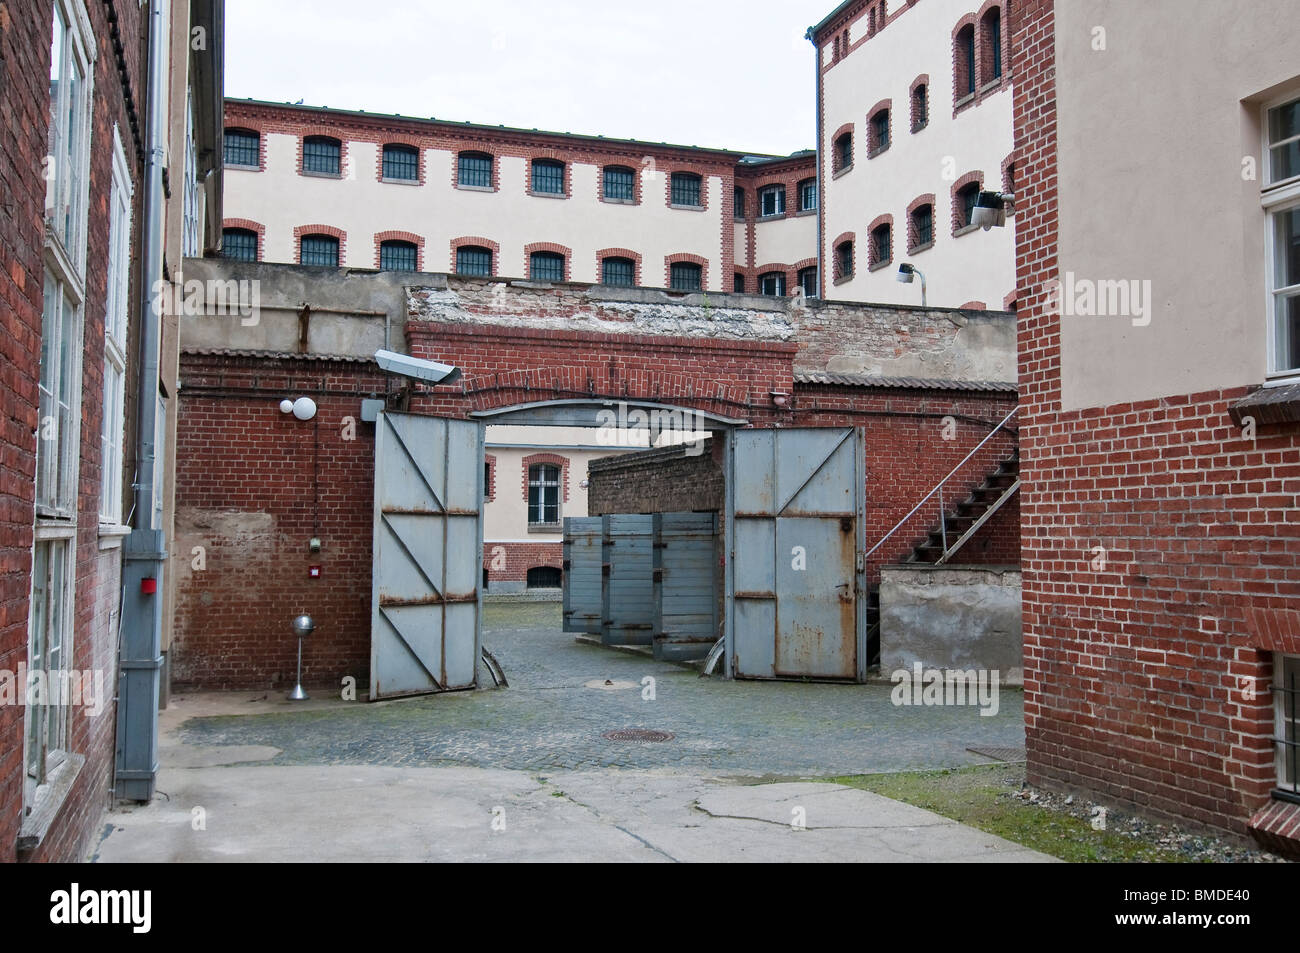 Courtygard of the state security service of the GDR, Potsdam, Brandenburg - Stock Image